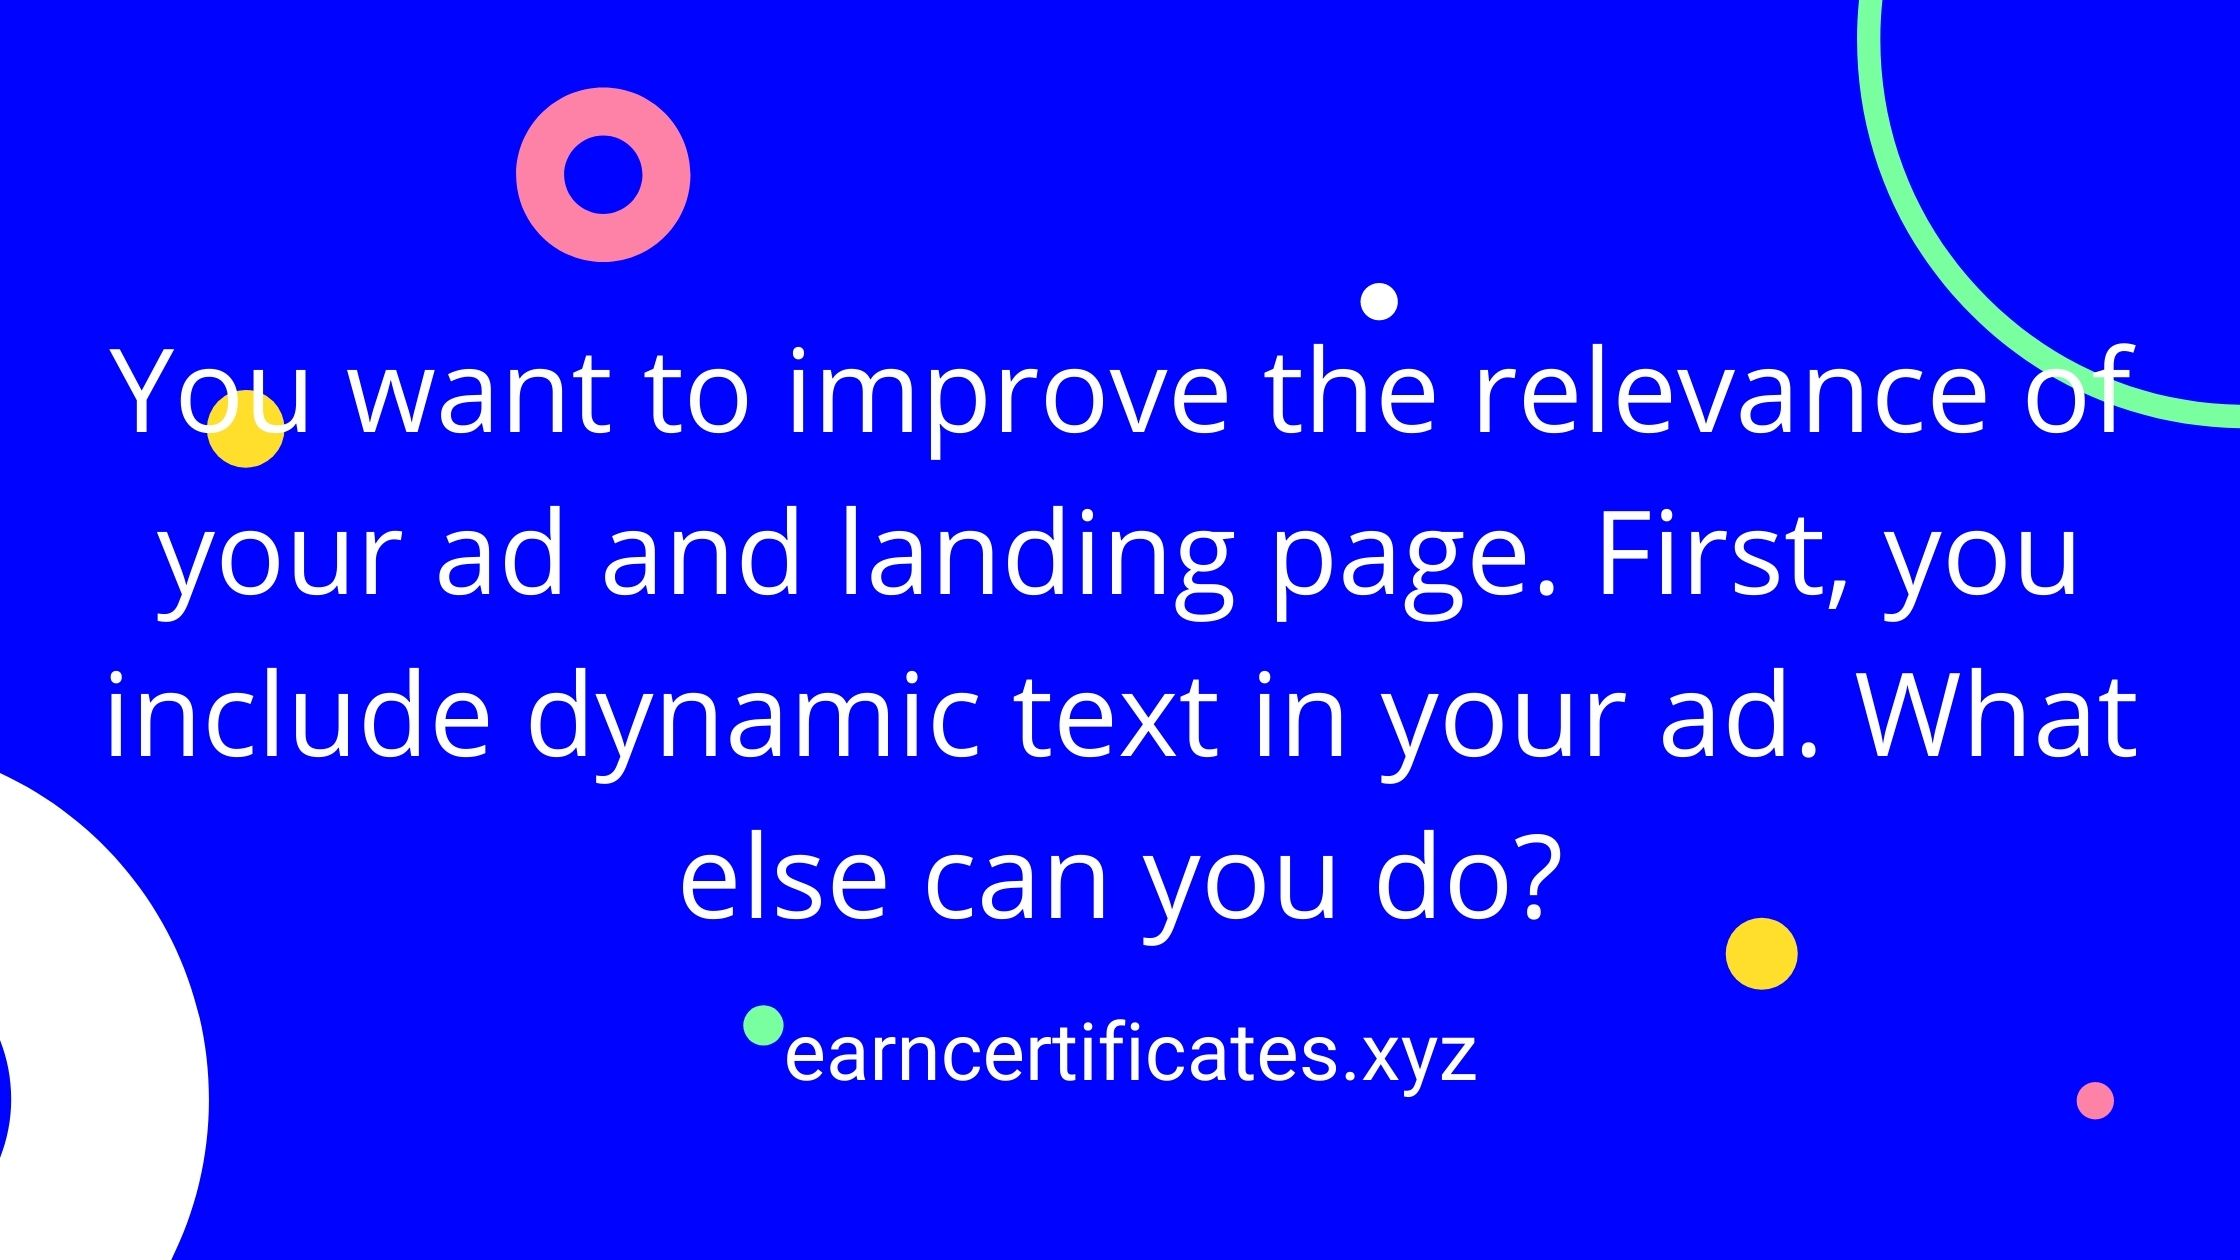 You want to improve the relevance of your ad and landing page. First, you include dynamic text in your ad. What else can you do?